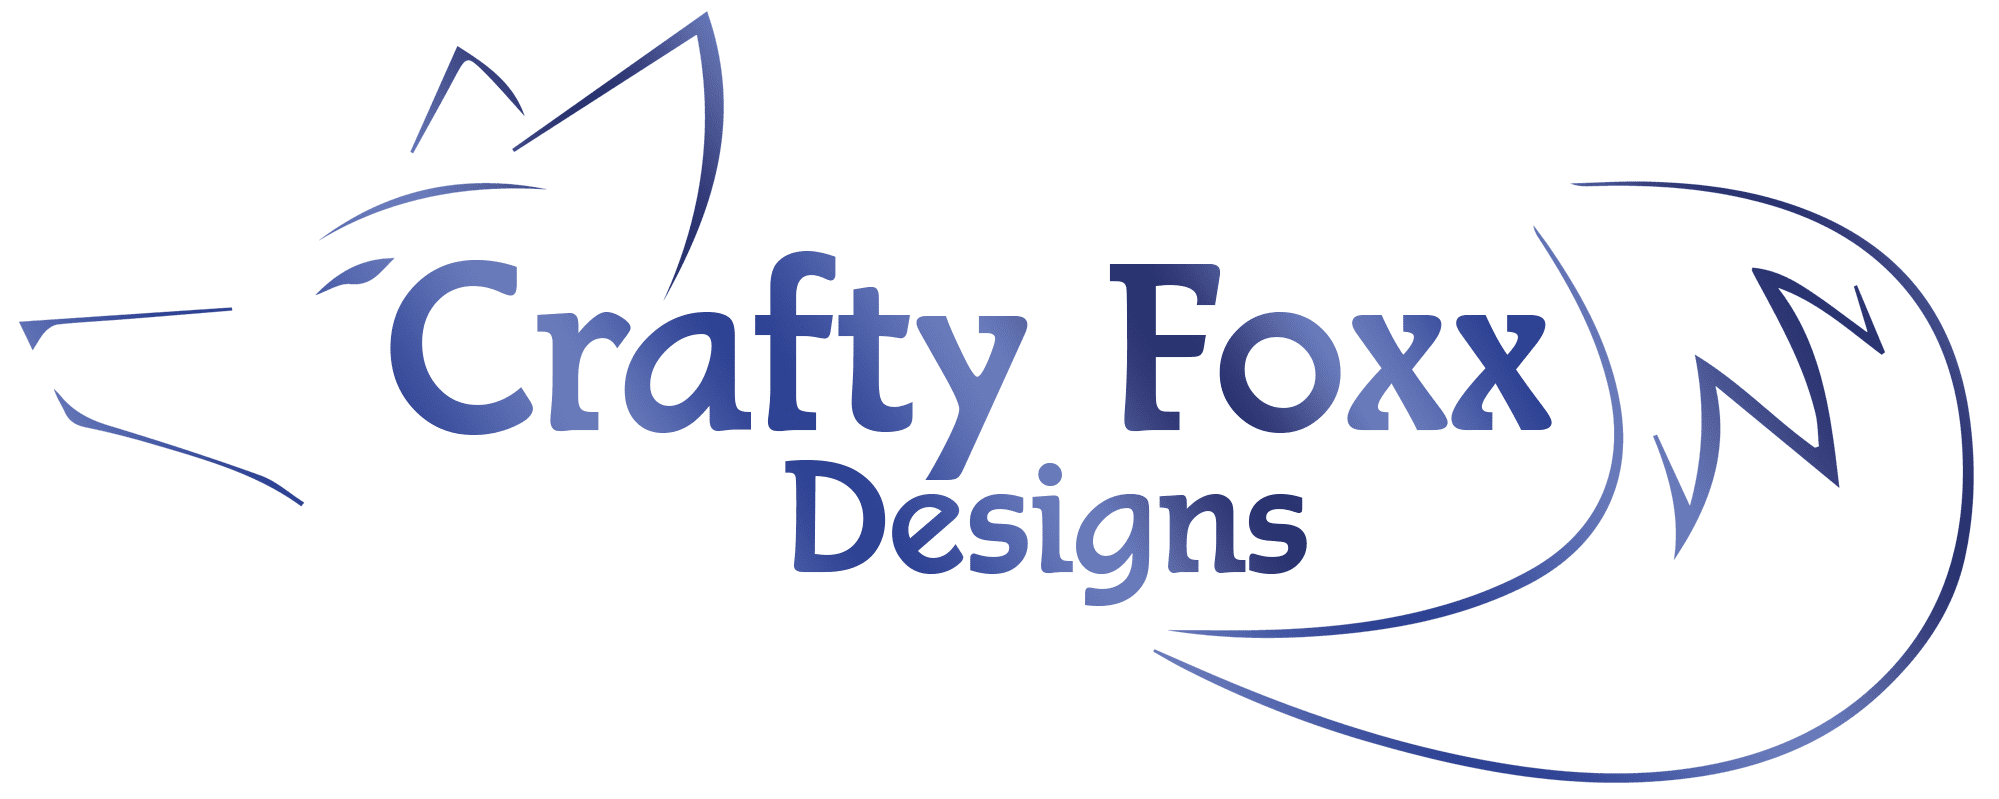 Crafty Foxx Designs